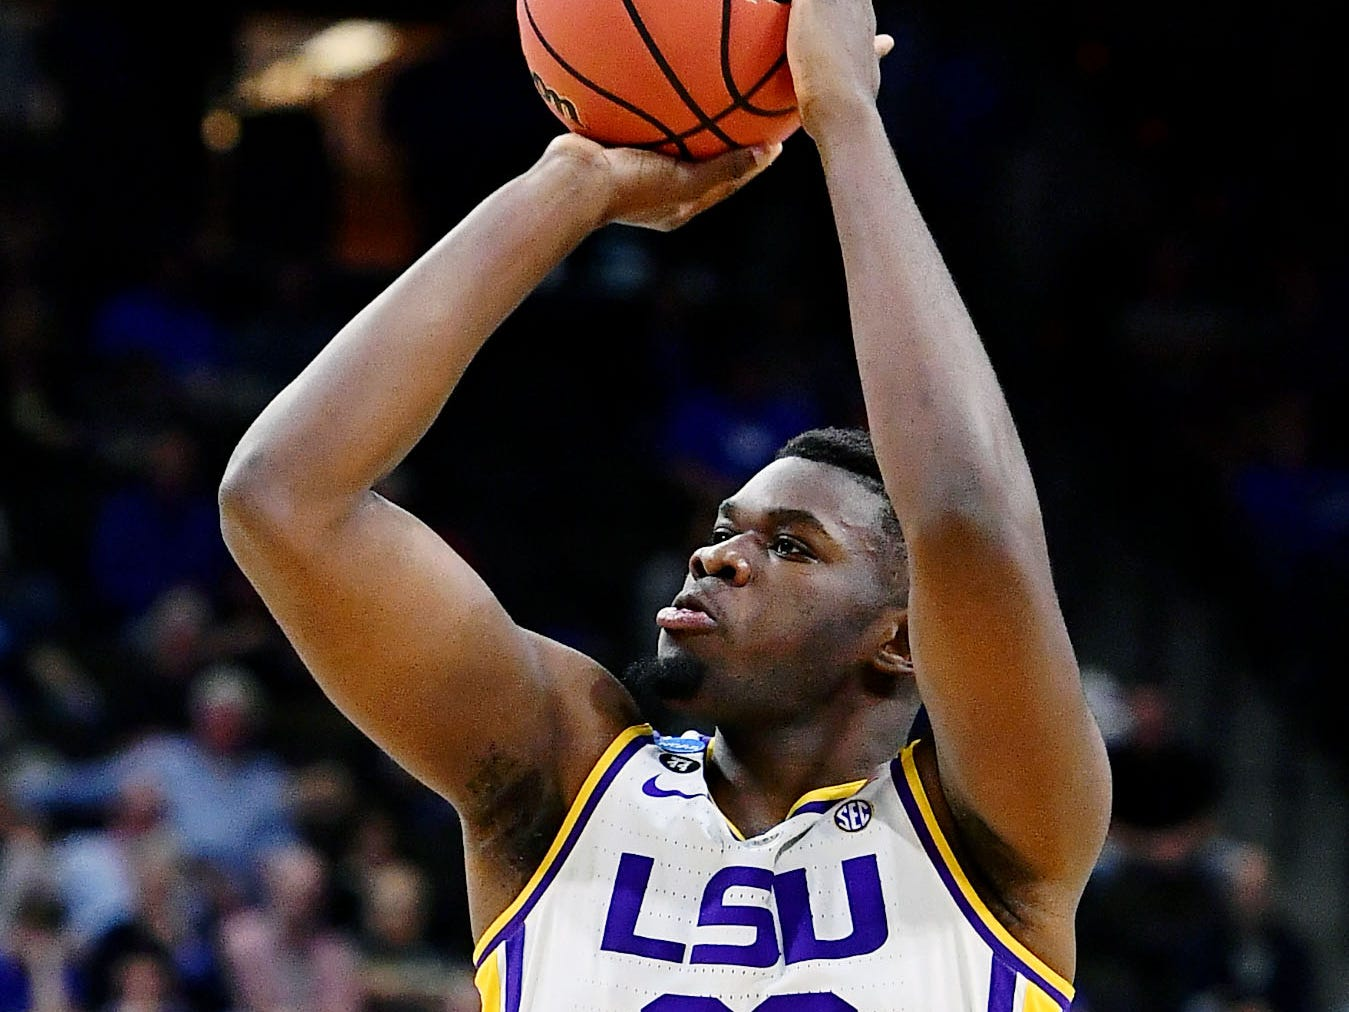 Mar 23, 2019; Jacksonville, FL, USA; LSU Tigers forward Darius Days (22) shoots against the Maryland Terrapins during the first half in the second round of the 2019 NCAA Tournament at Jacksonville Veterans Memorial Arena. Mandatory Credit: John David Mercer-USA TODAY Sports